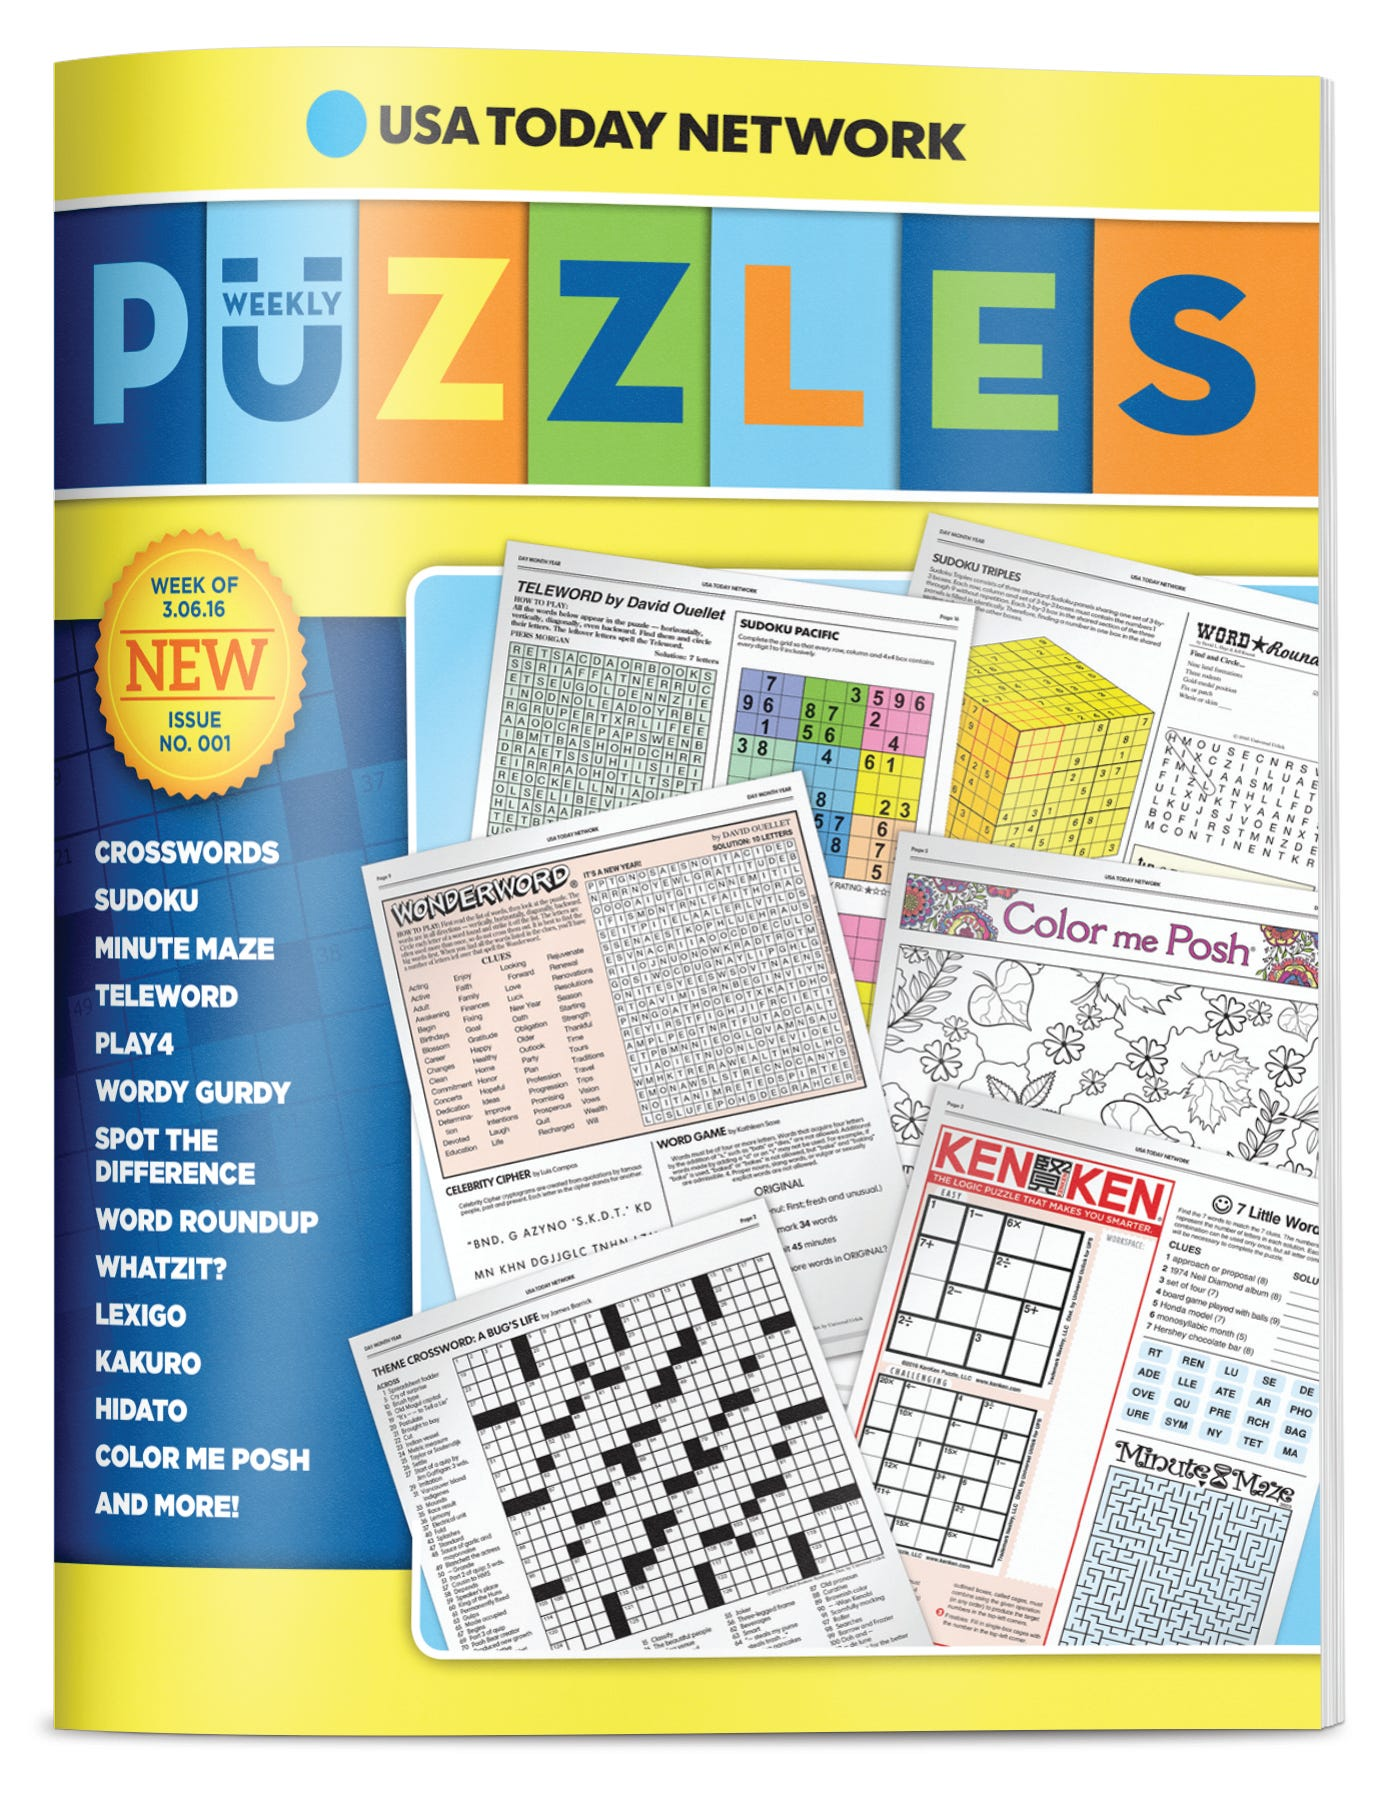 graphic relating to Usa Today Crossword Printable named Consider Weekly Puzzles provided in the direction of your house